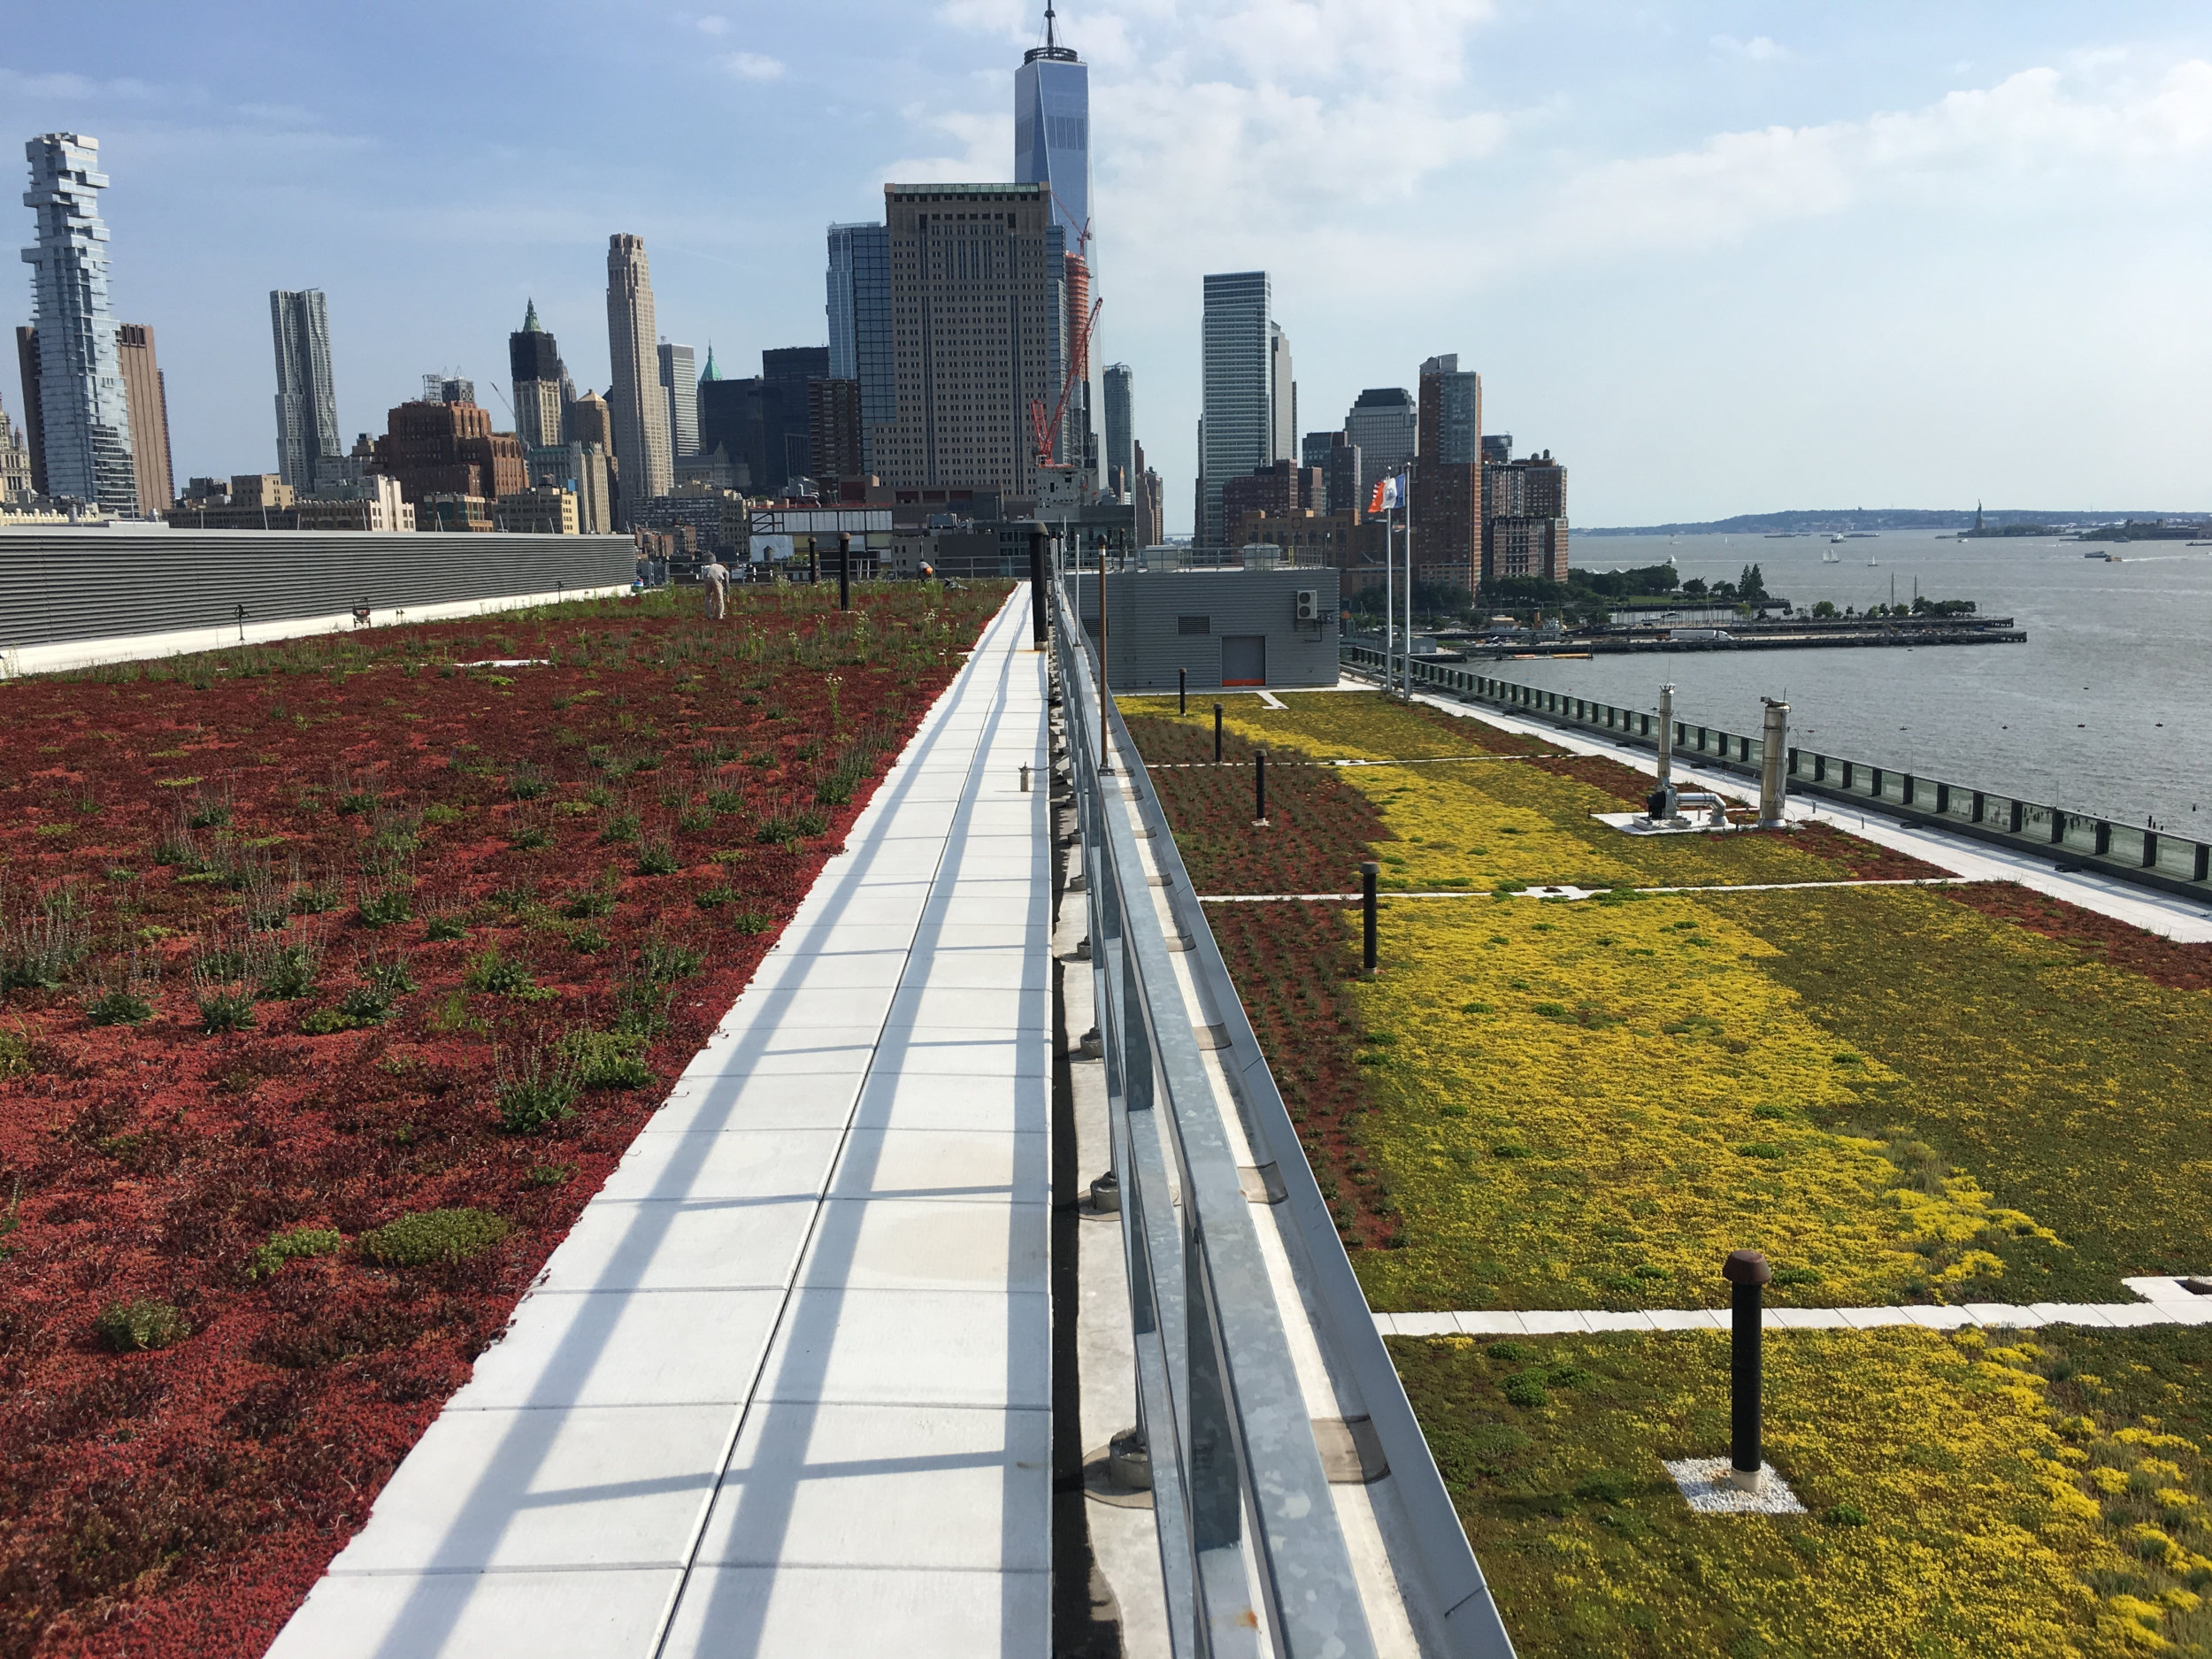 New-York-NY-Green-Roof-Diverse-Sedum-Species.jpg